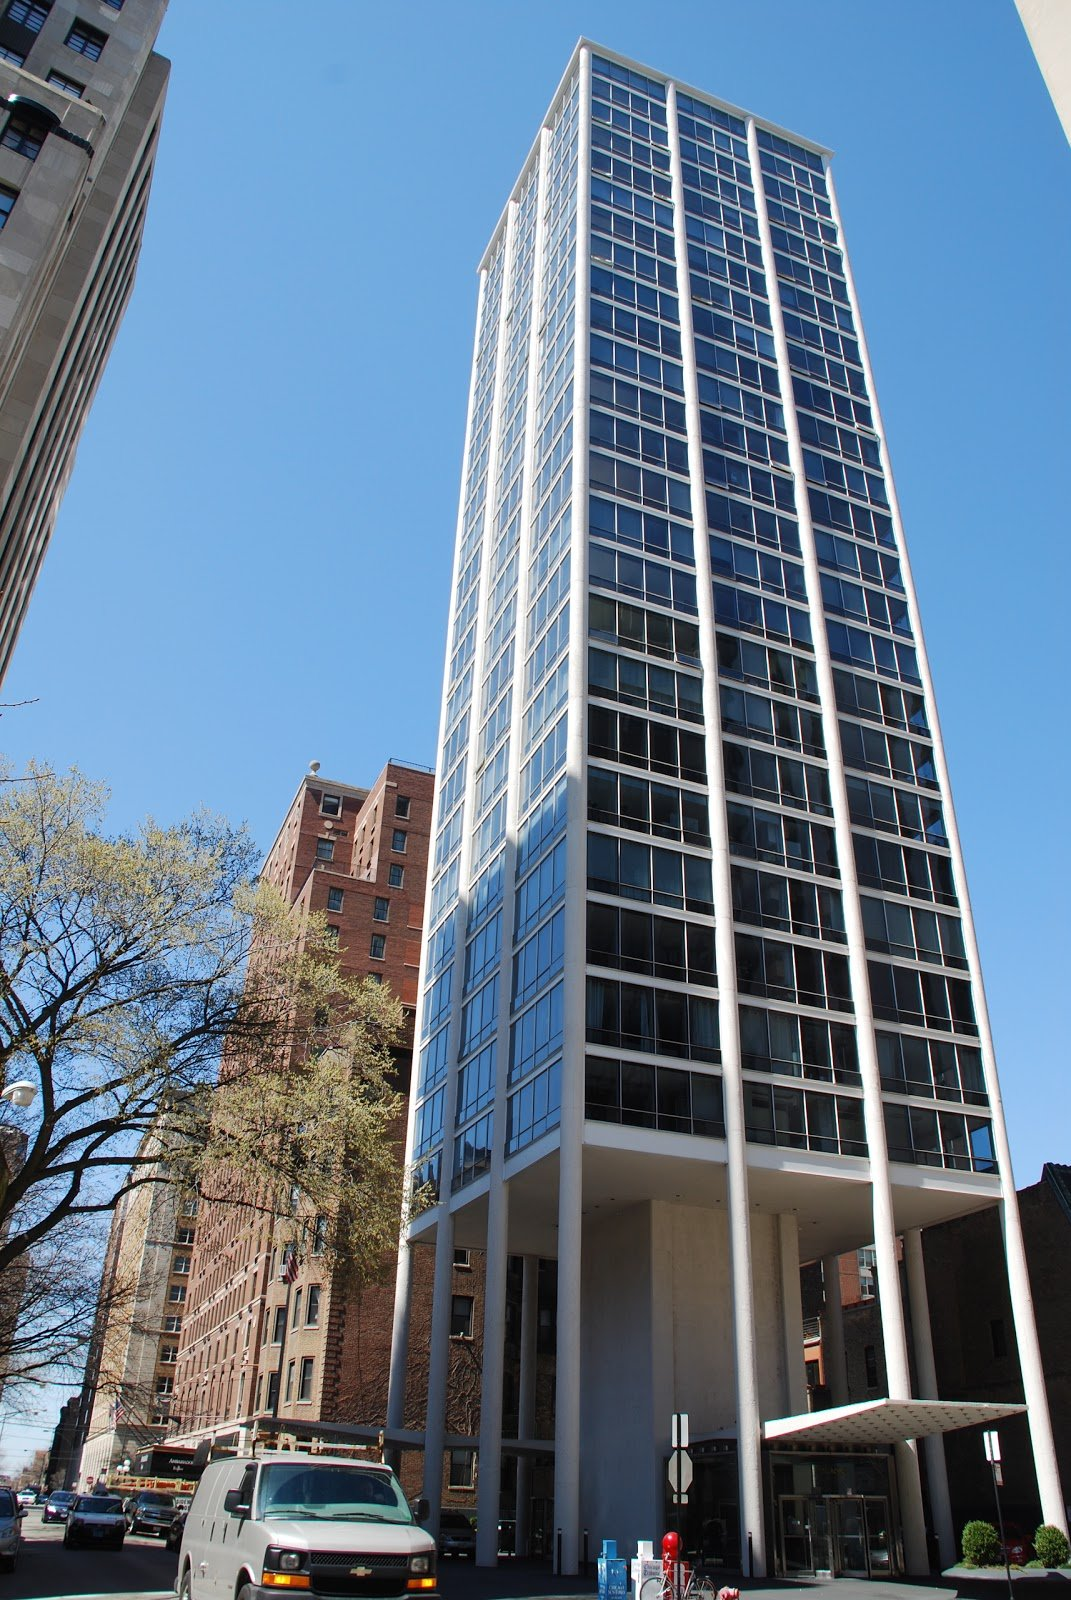 Current appearance of Astor Tower